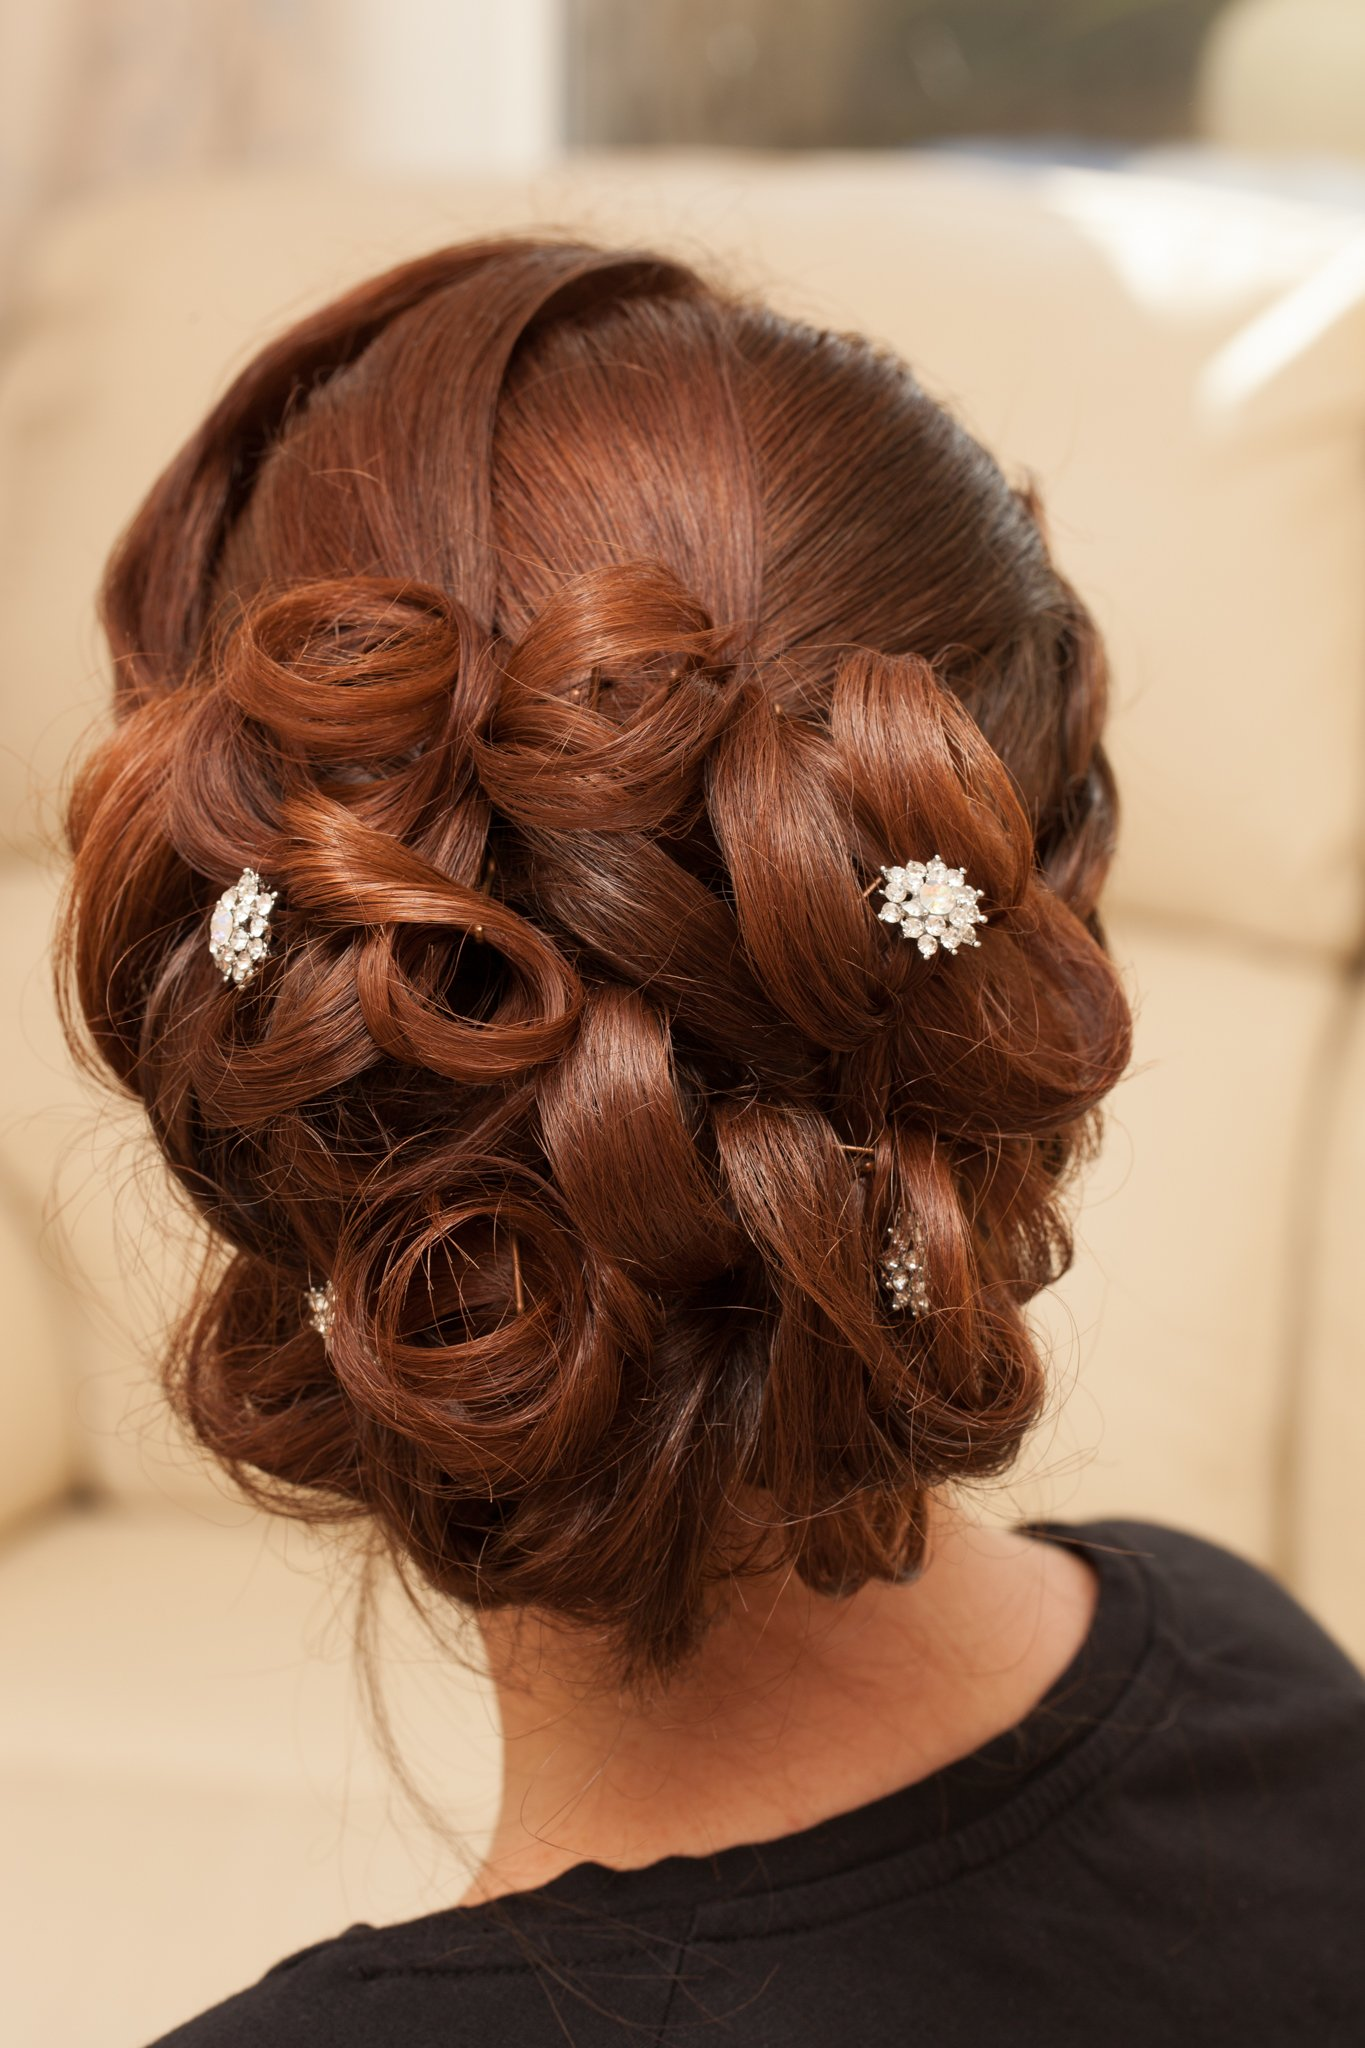 Wedding day; hairstyles, Tania Miller Photography, Cwmbran wedding photographer, Newport wedding photographer